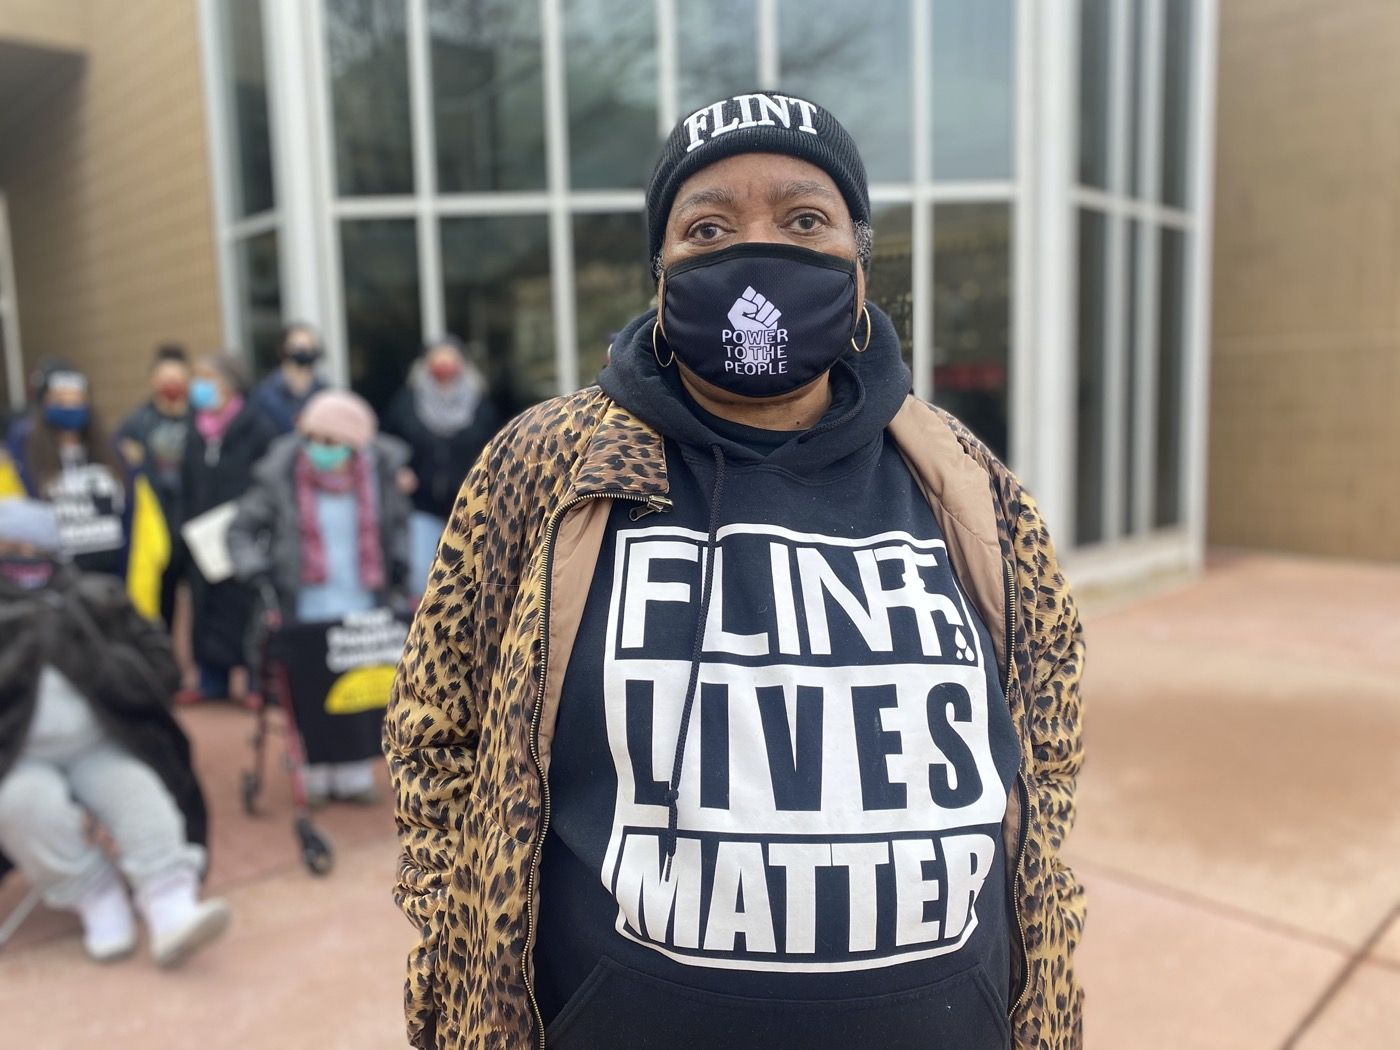 """a Black woman protester wearing a beanie that says """"flint"""", a mask that says """"power to the people"""", and a shirt that says """"flint lives matter"""""""